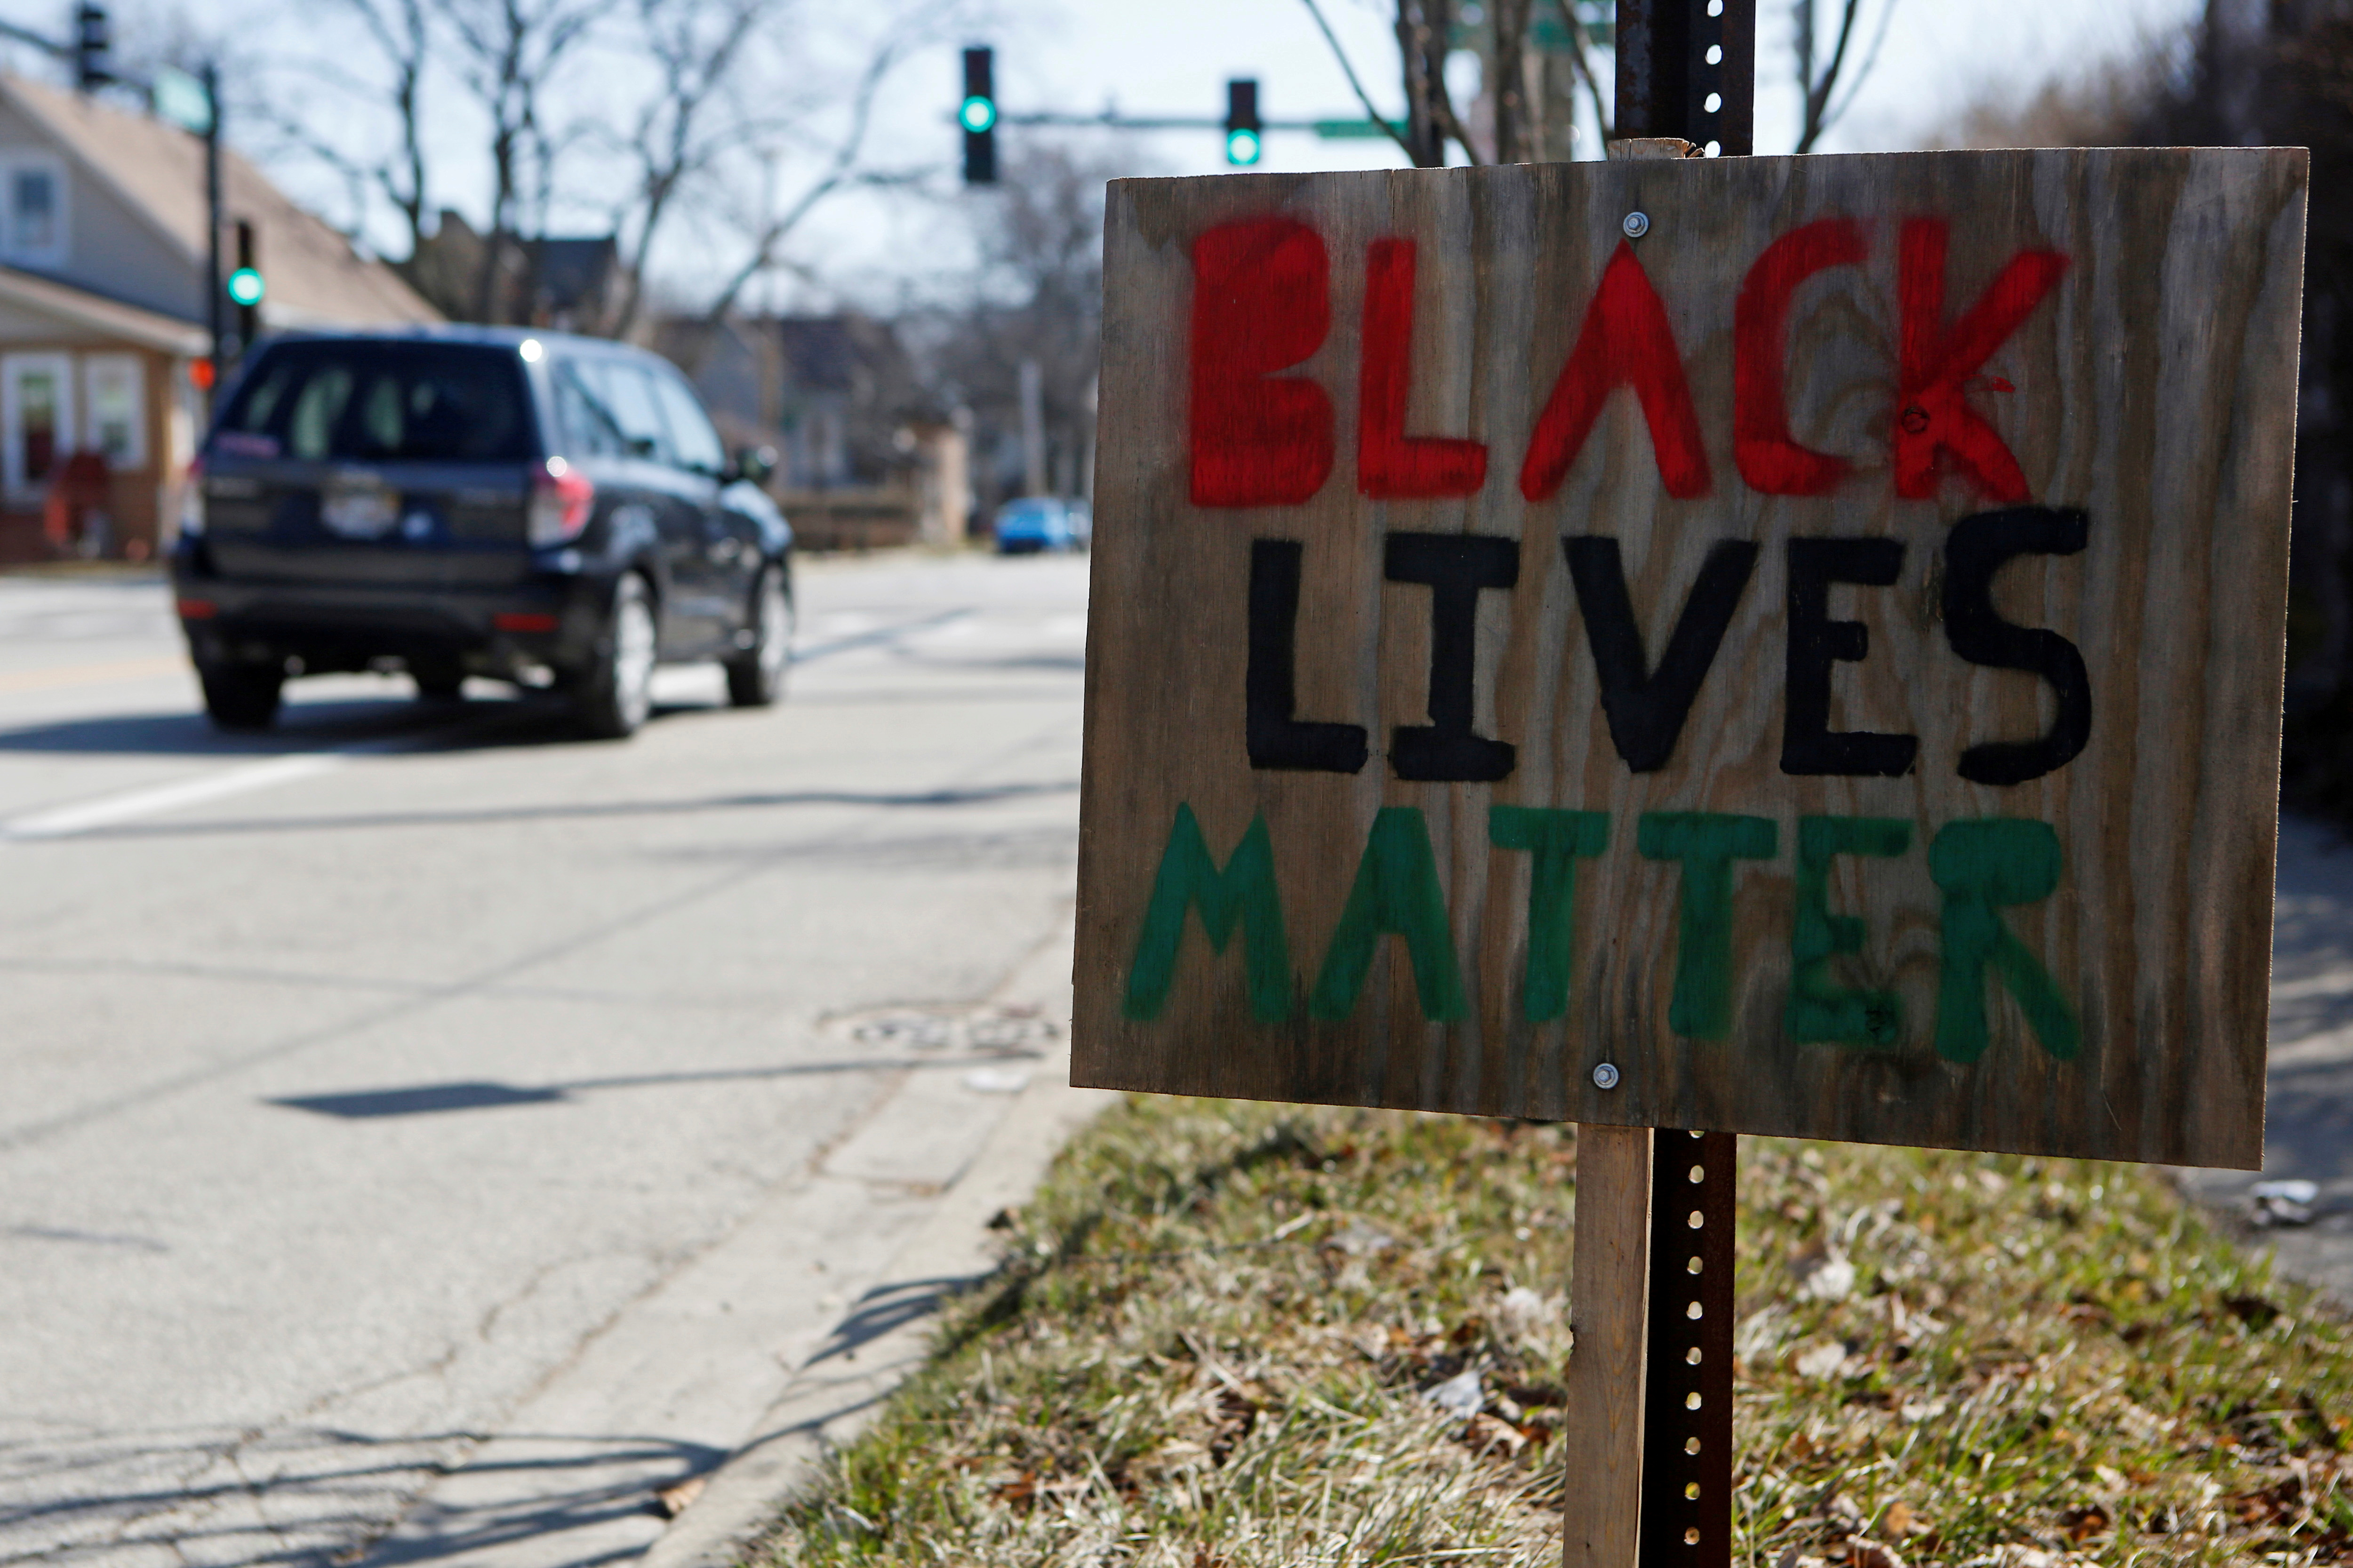 A Black Lives Matter sign is seen near the corner of Emerson Street and Dodge Avenue in Evanston, Illinois, U.S., March 19, 2021. REUTERS/Eileen T. Meslar/File Photo